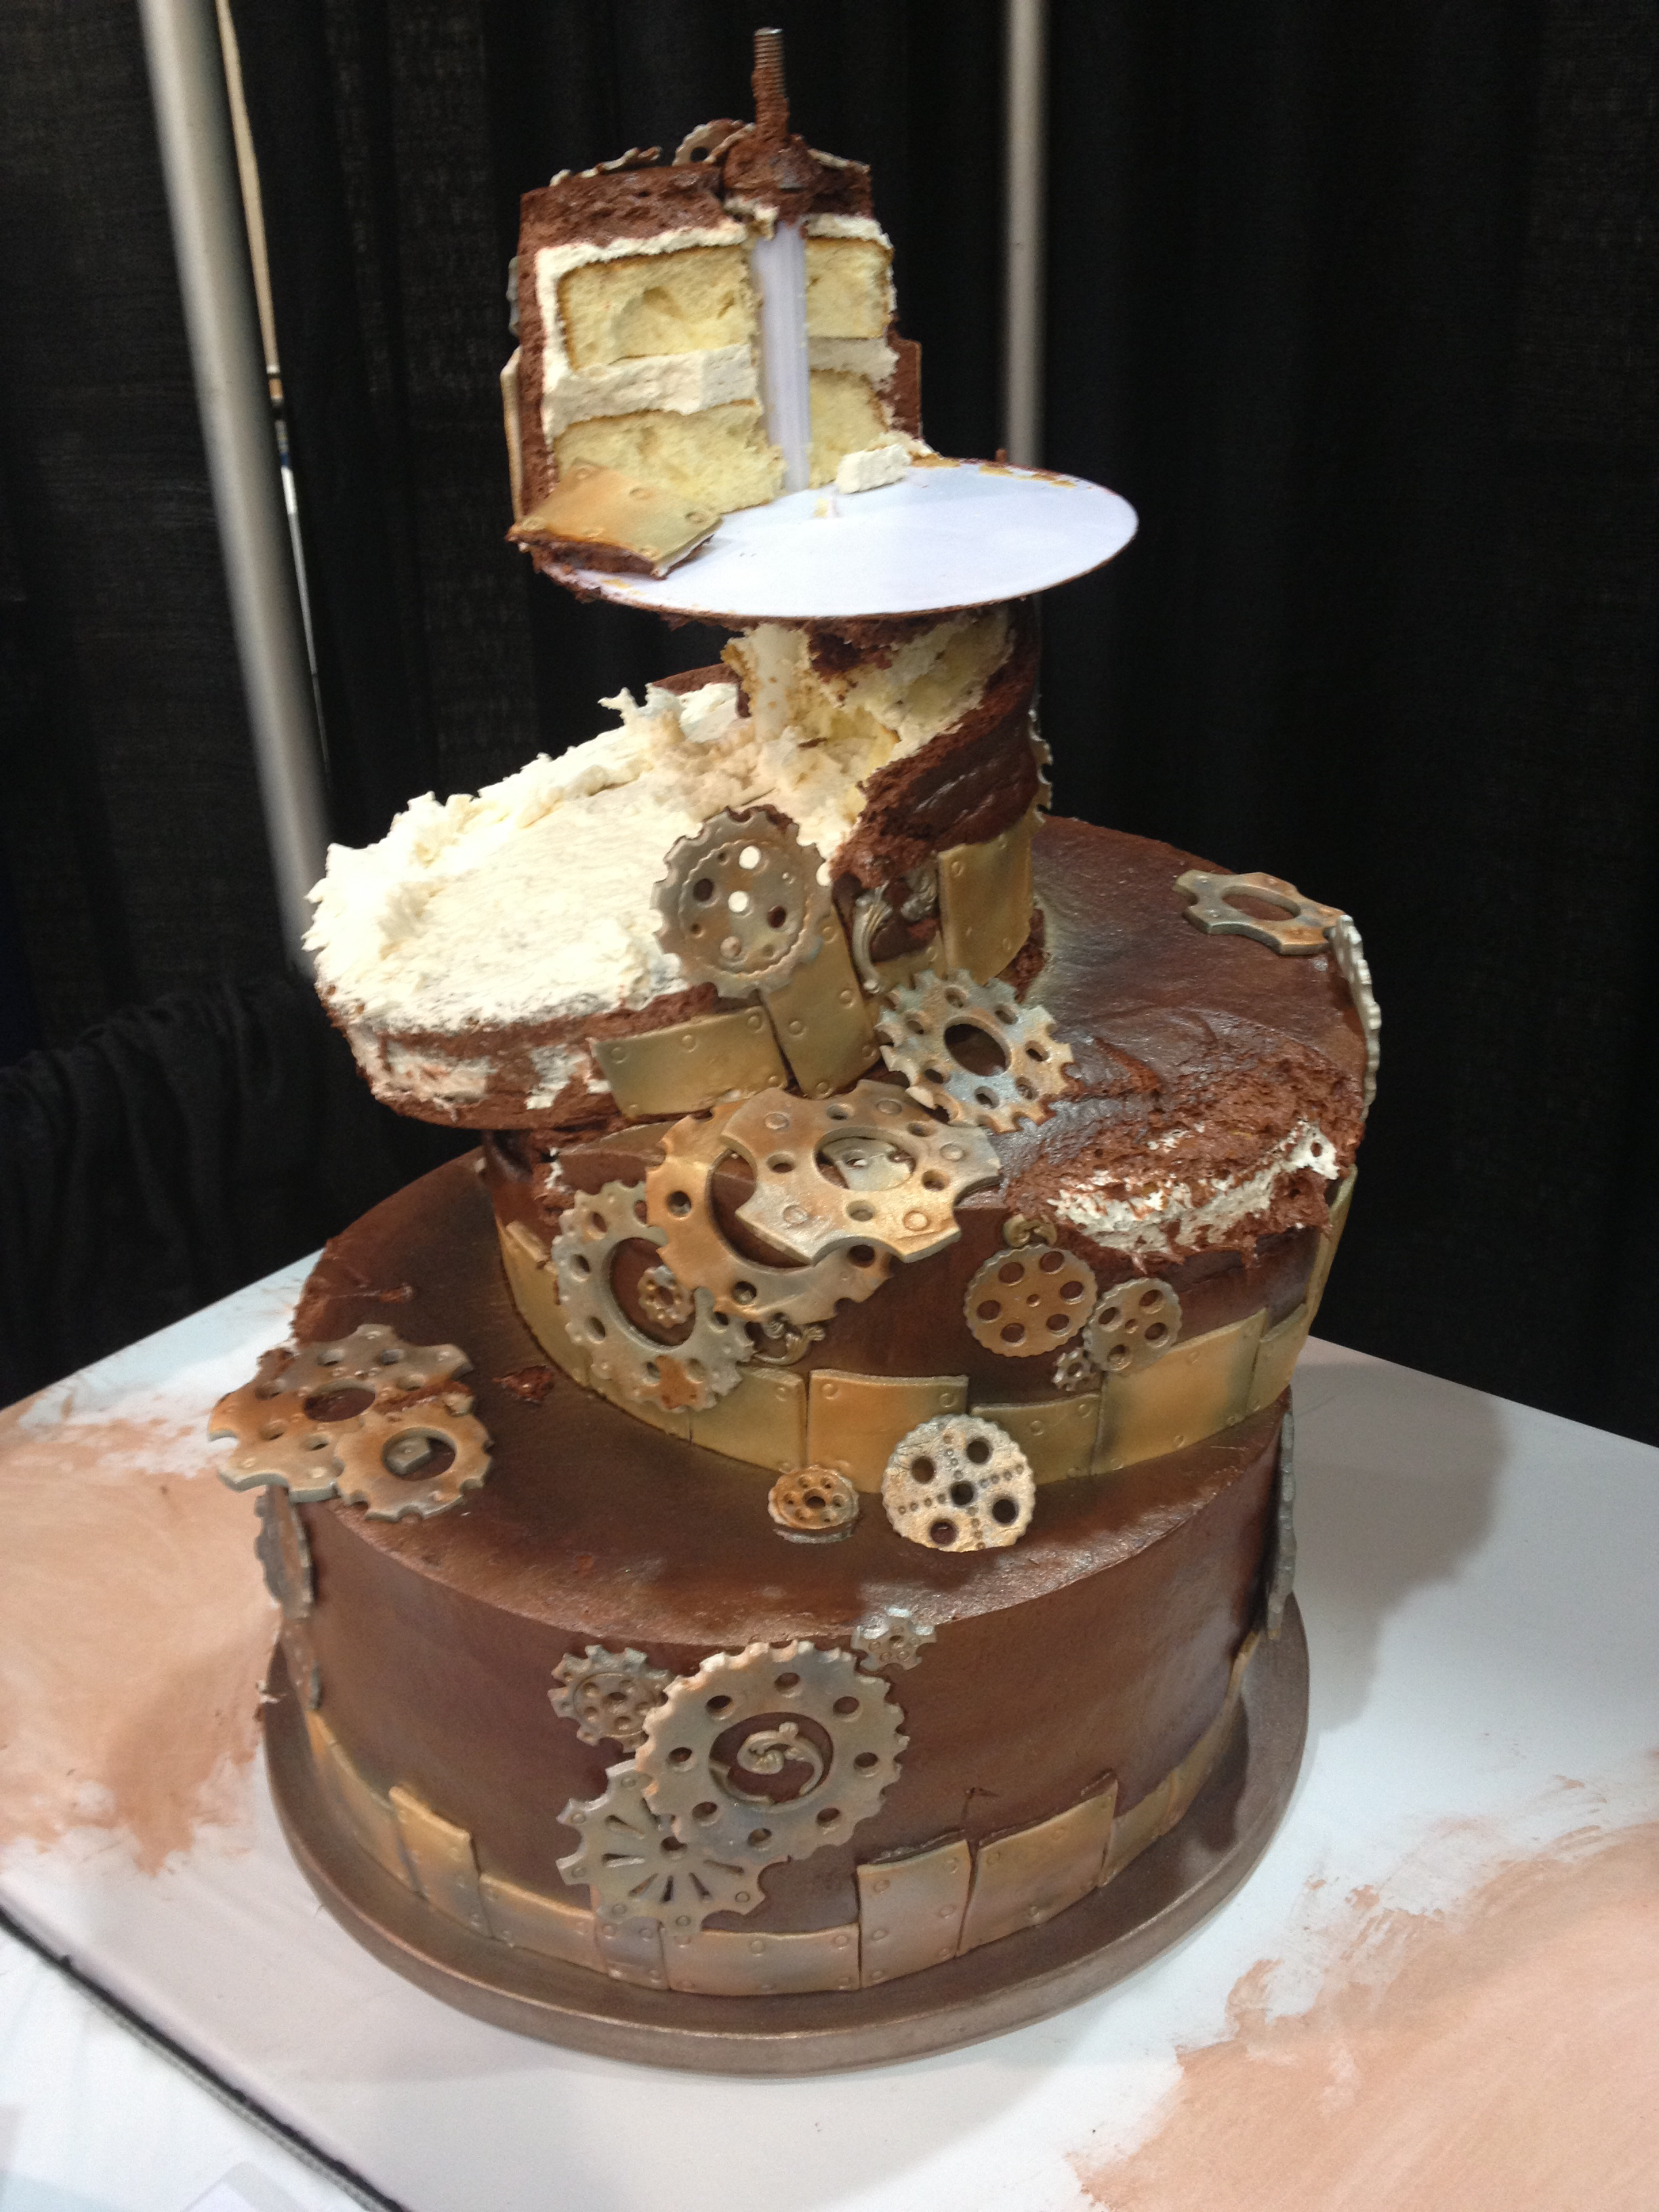 Steampunk cakes are designed to look broken.